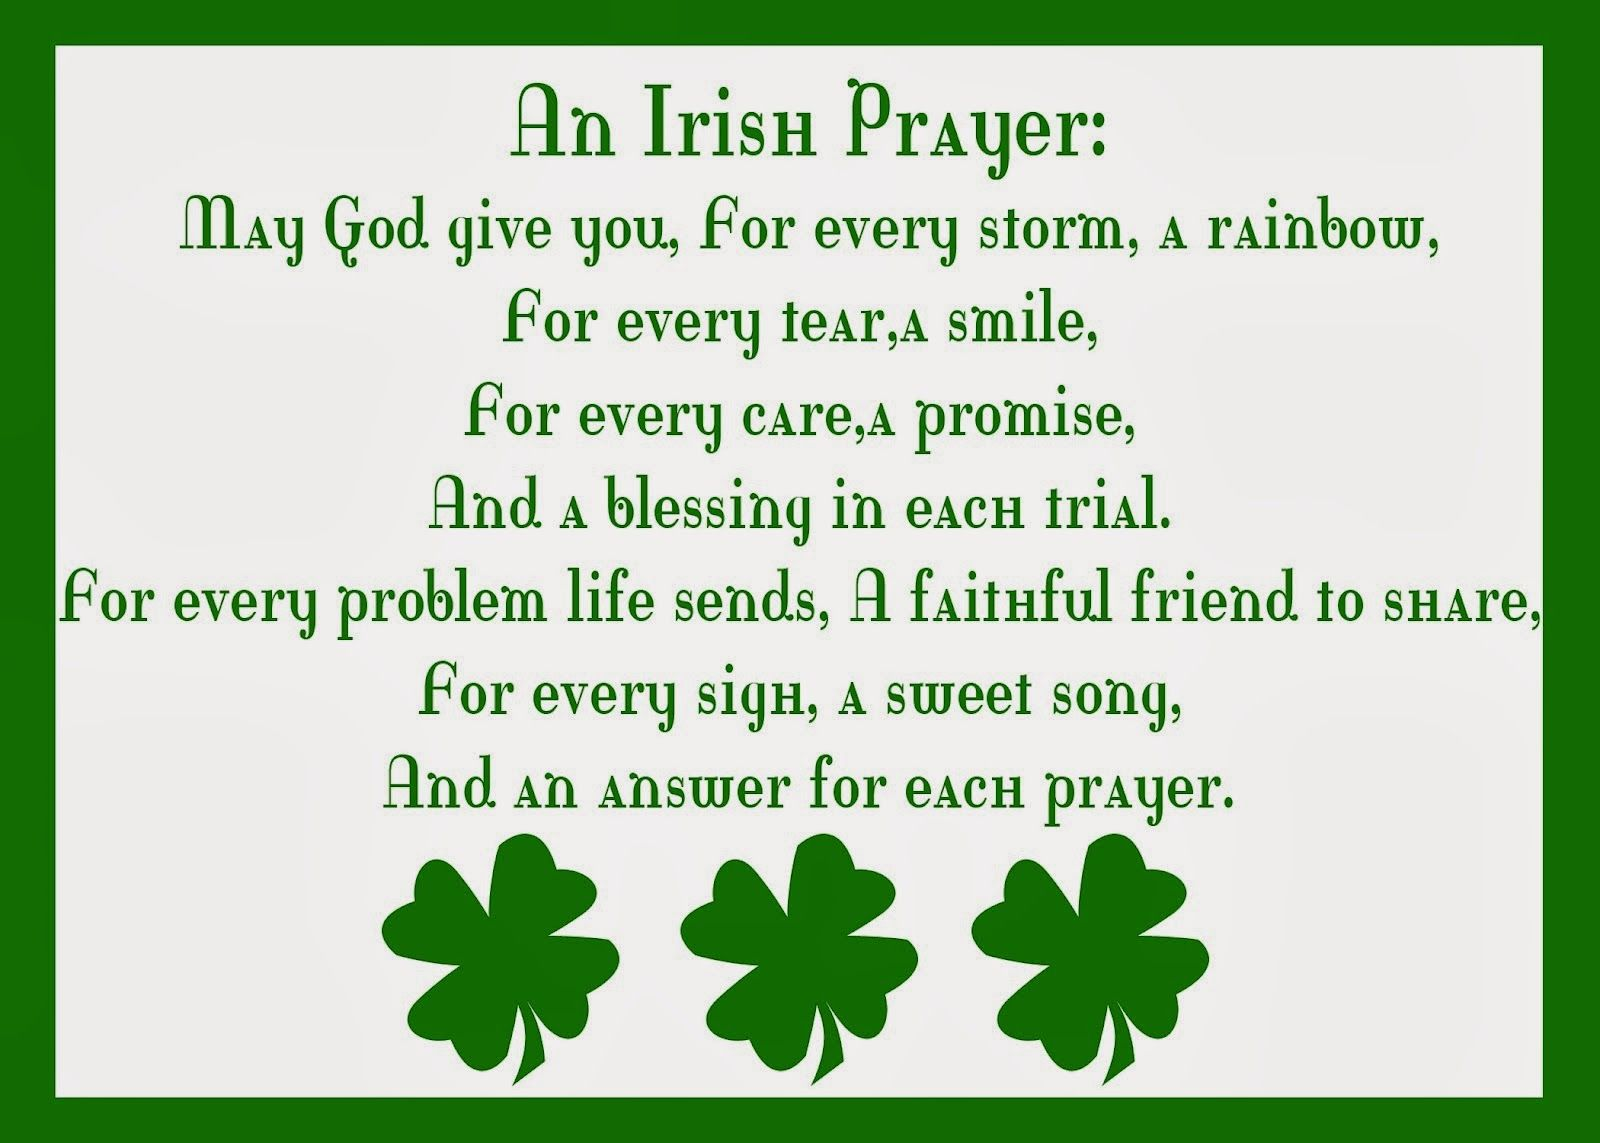 St. Patrick's Day Prayer | ... .com/pages/Irish-Sayings-Proverbs ...